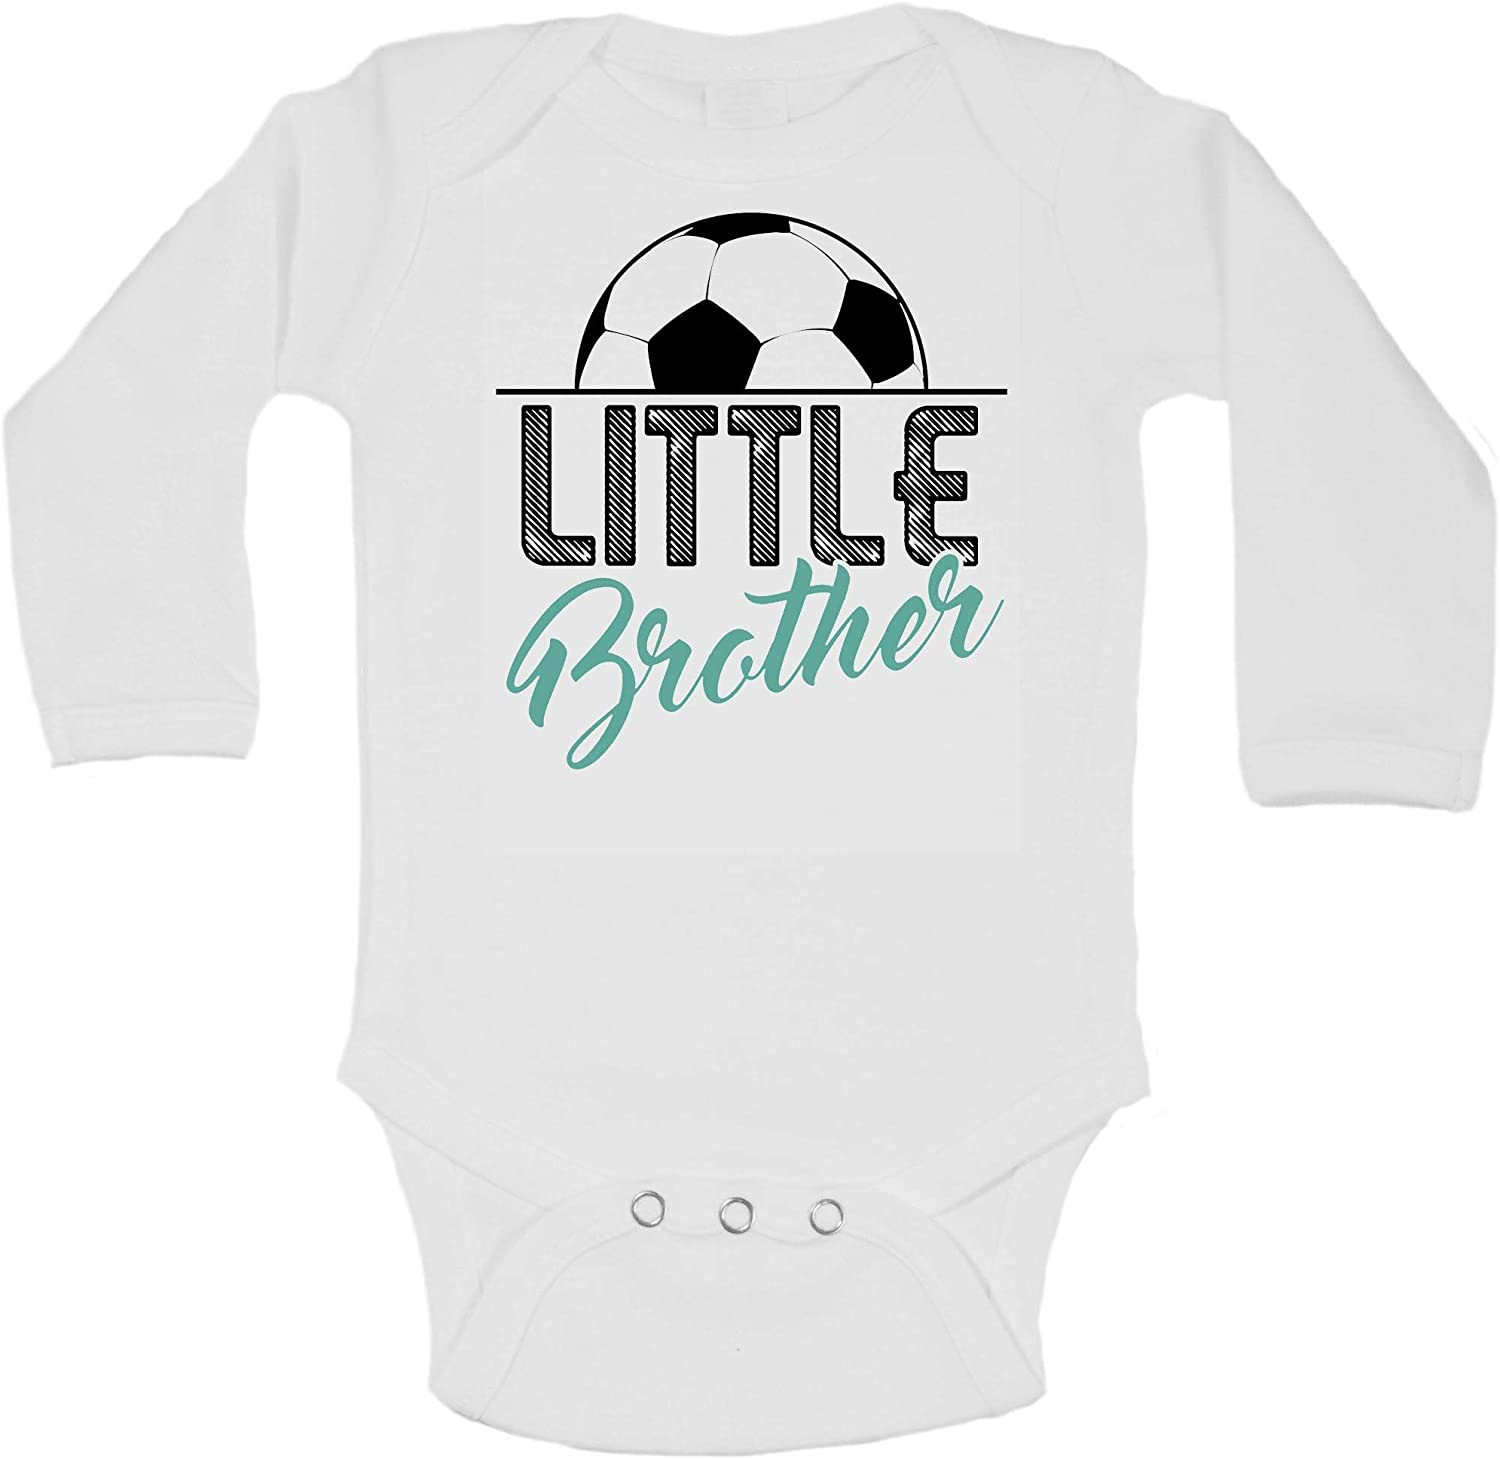 Big Bro Little Bro Family Sports Shirts Little Brother Soccer Fan Athletic Bodysuits - Toddler Tees White